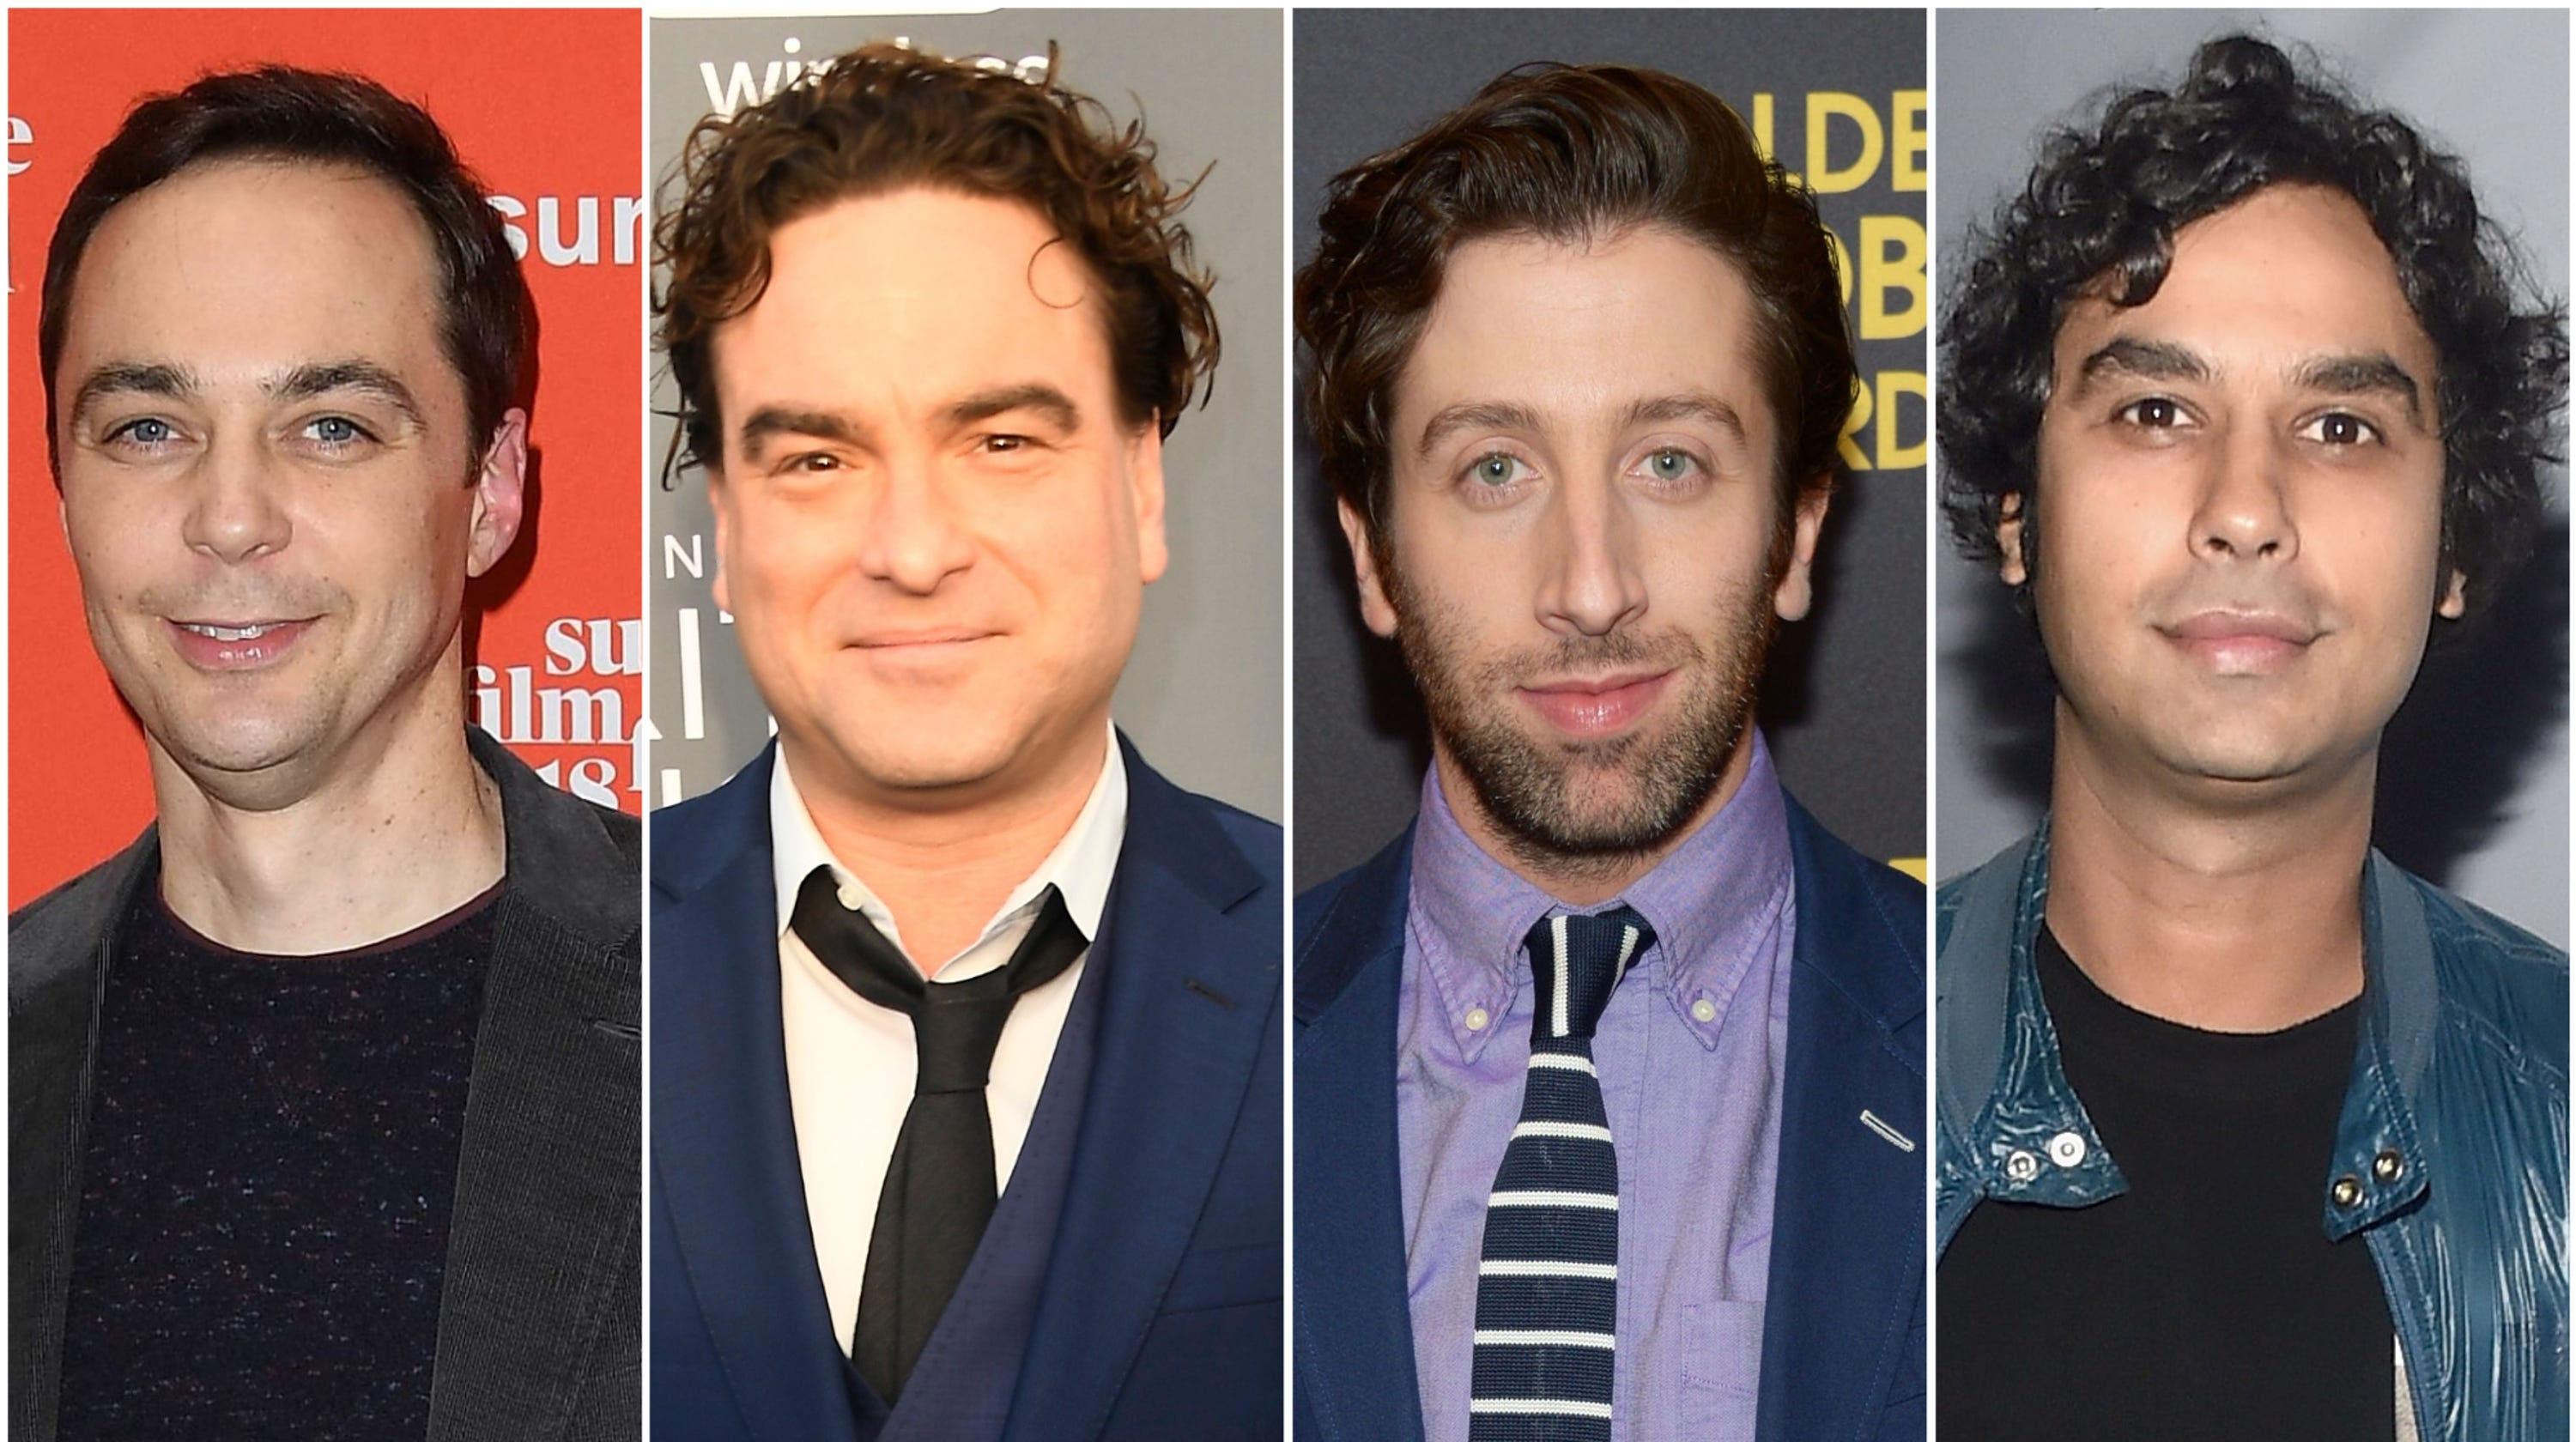 The highest-paid TV actors in the world: 'Big Bang Theory' stars